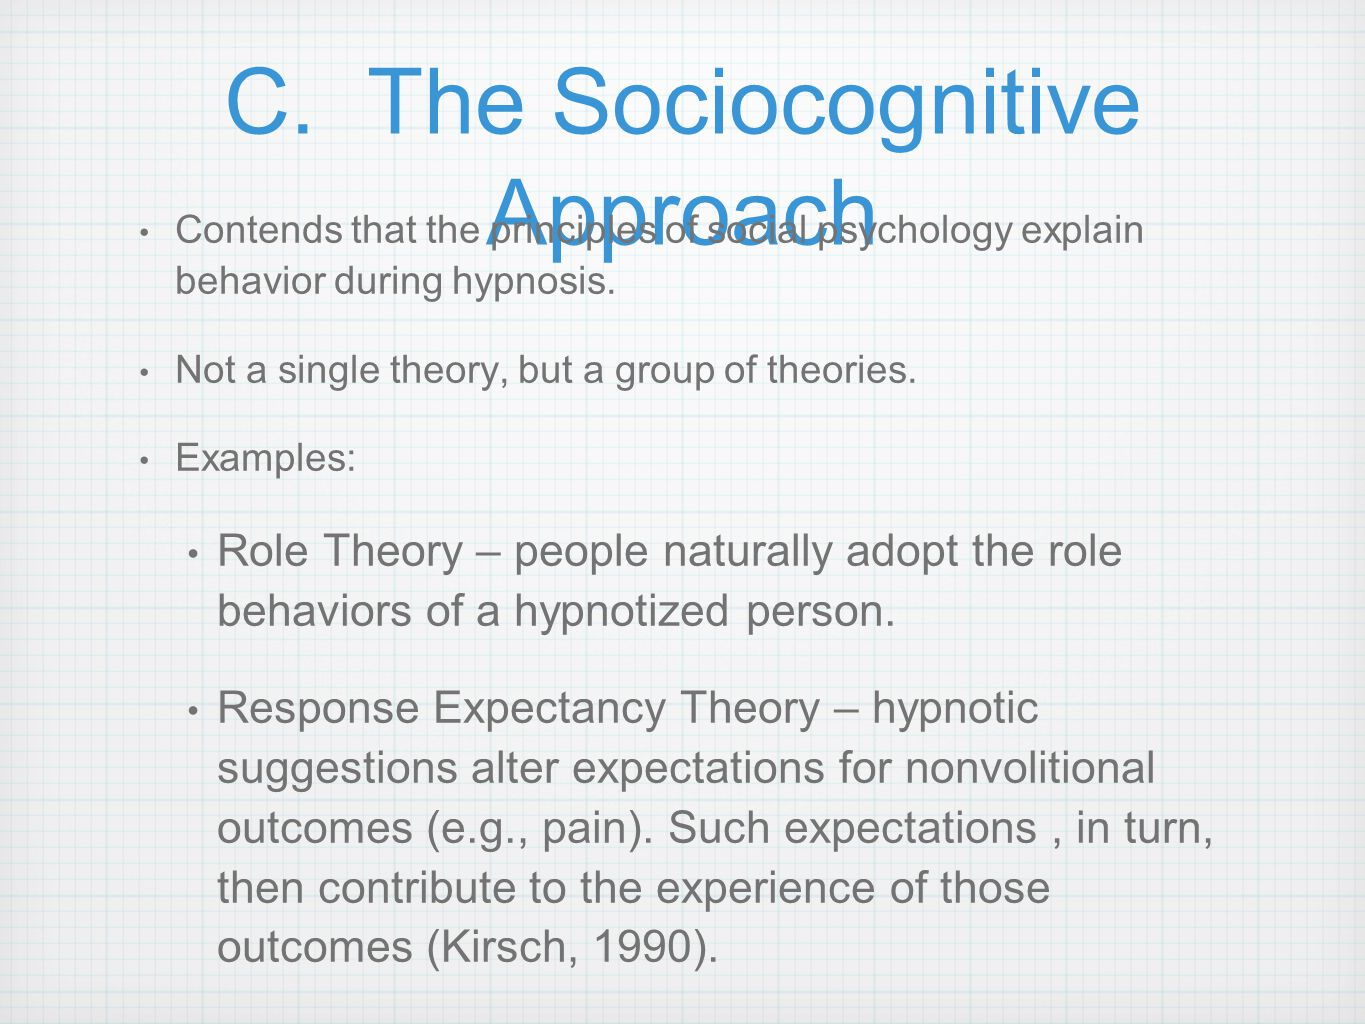 C. The Sociocognitive Approach Contends that the principles of social psychology explain behavior during hypnosis. Not a single theory, but a group of